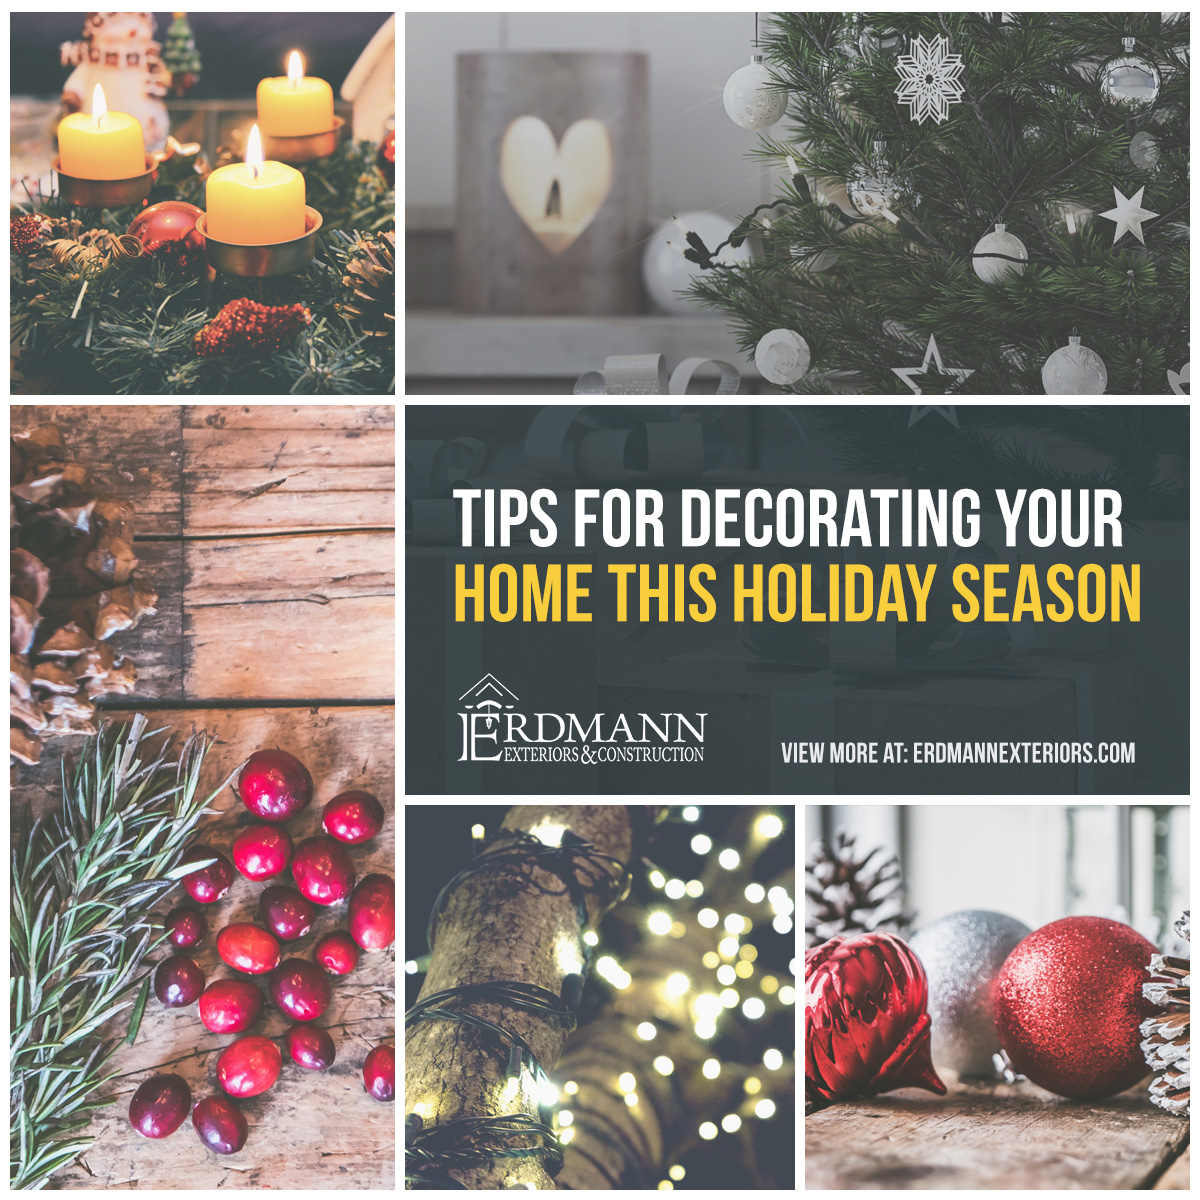 Tips For Decorating Your Home Simply And Safely This Holiday Season